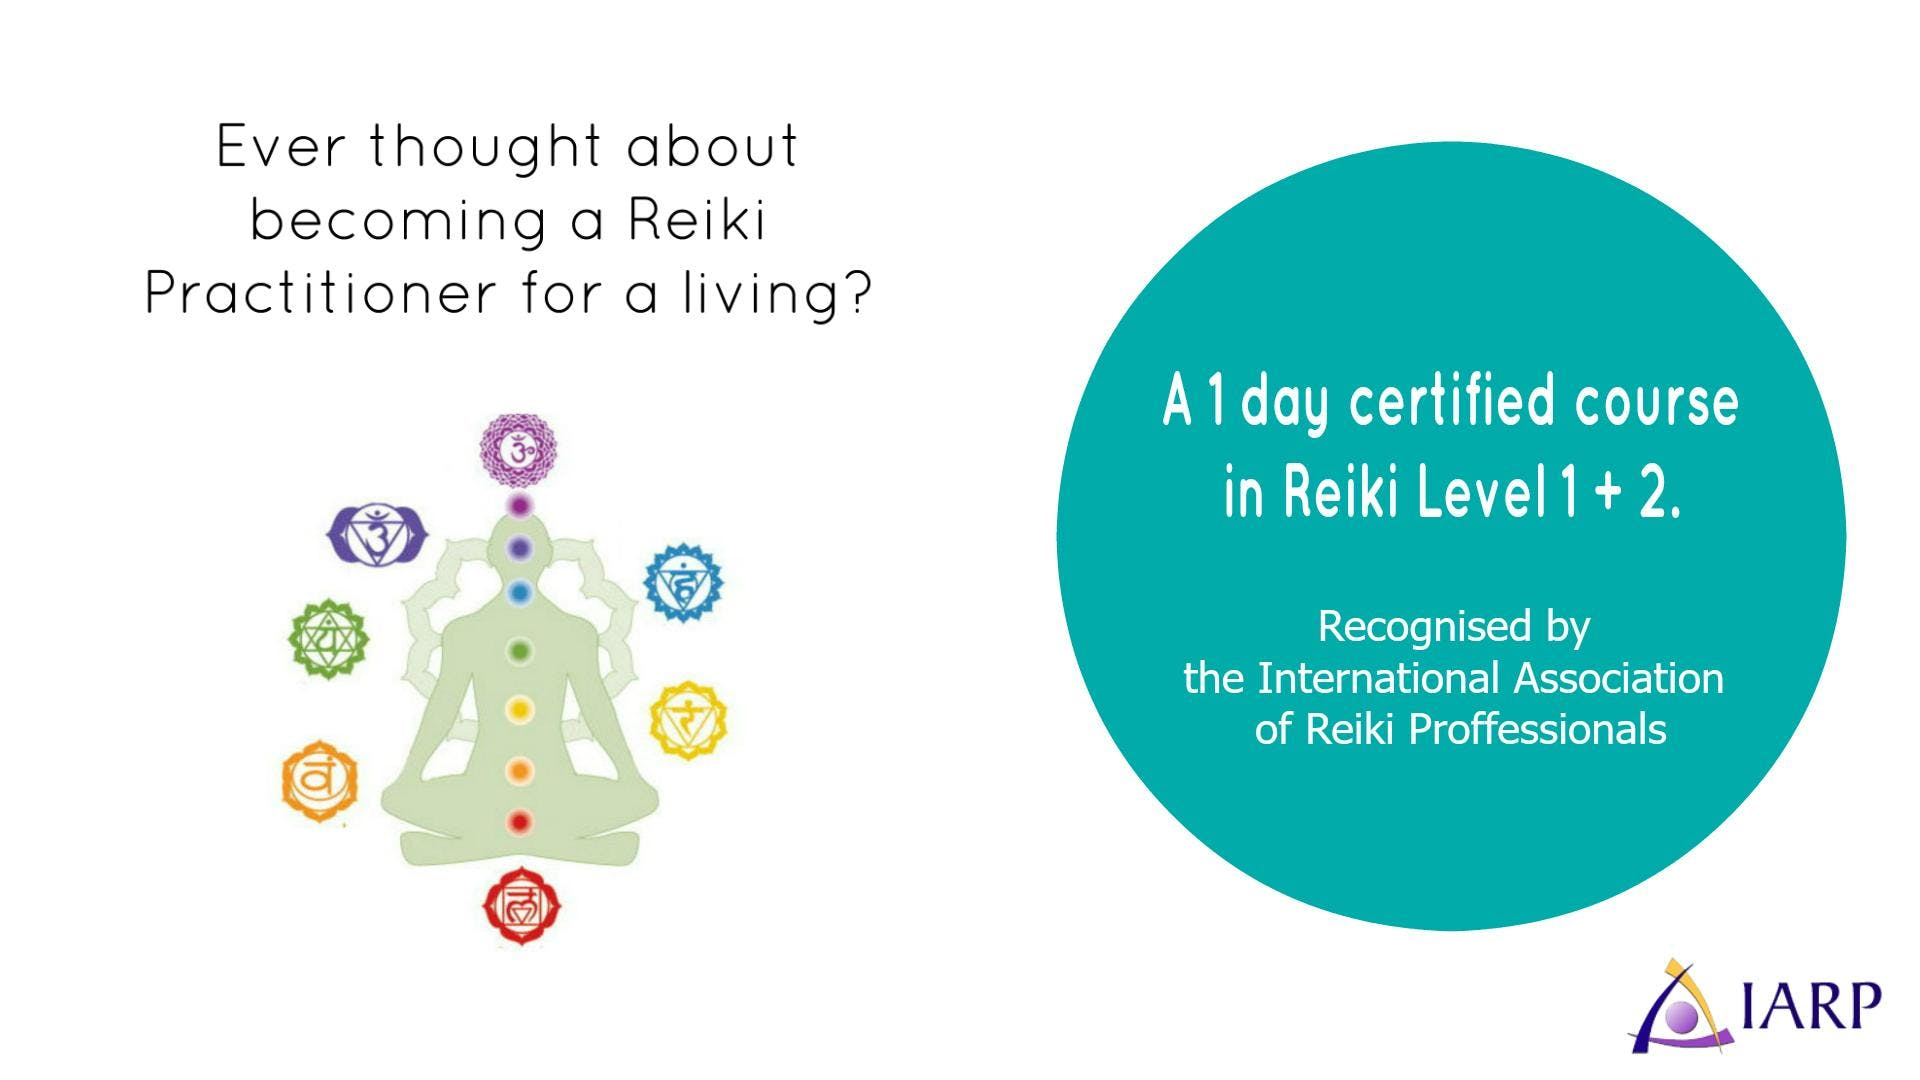 Reiki Attunement Level 1 & 2 with recognised Certification from the International Association of Reiki